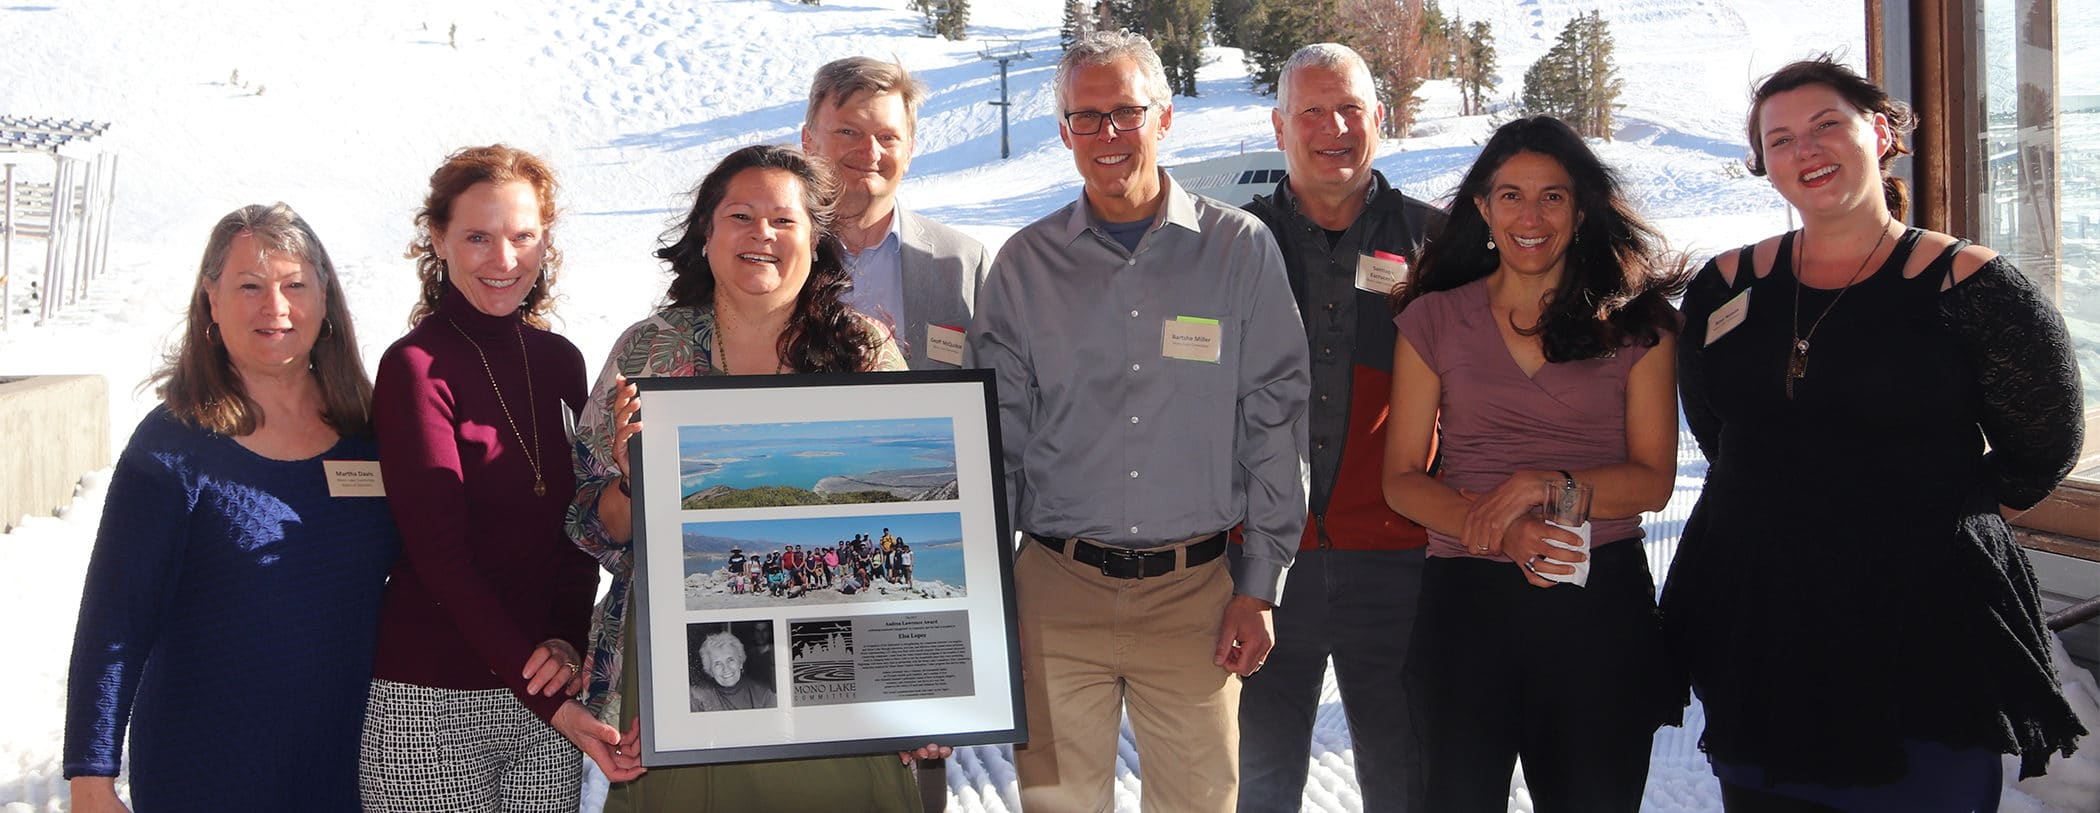 A group of 8 smiling people pose, one is holding a framed award with photos on it.